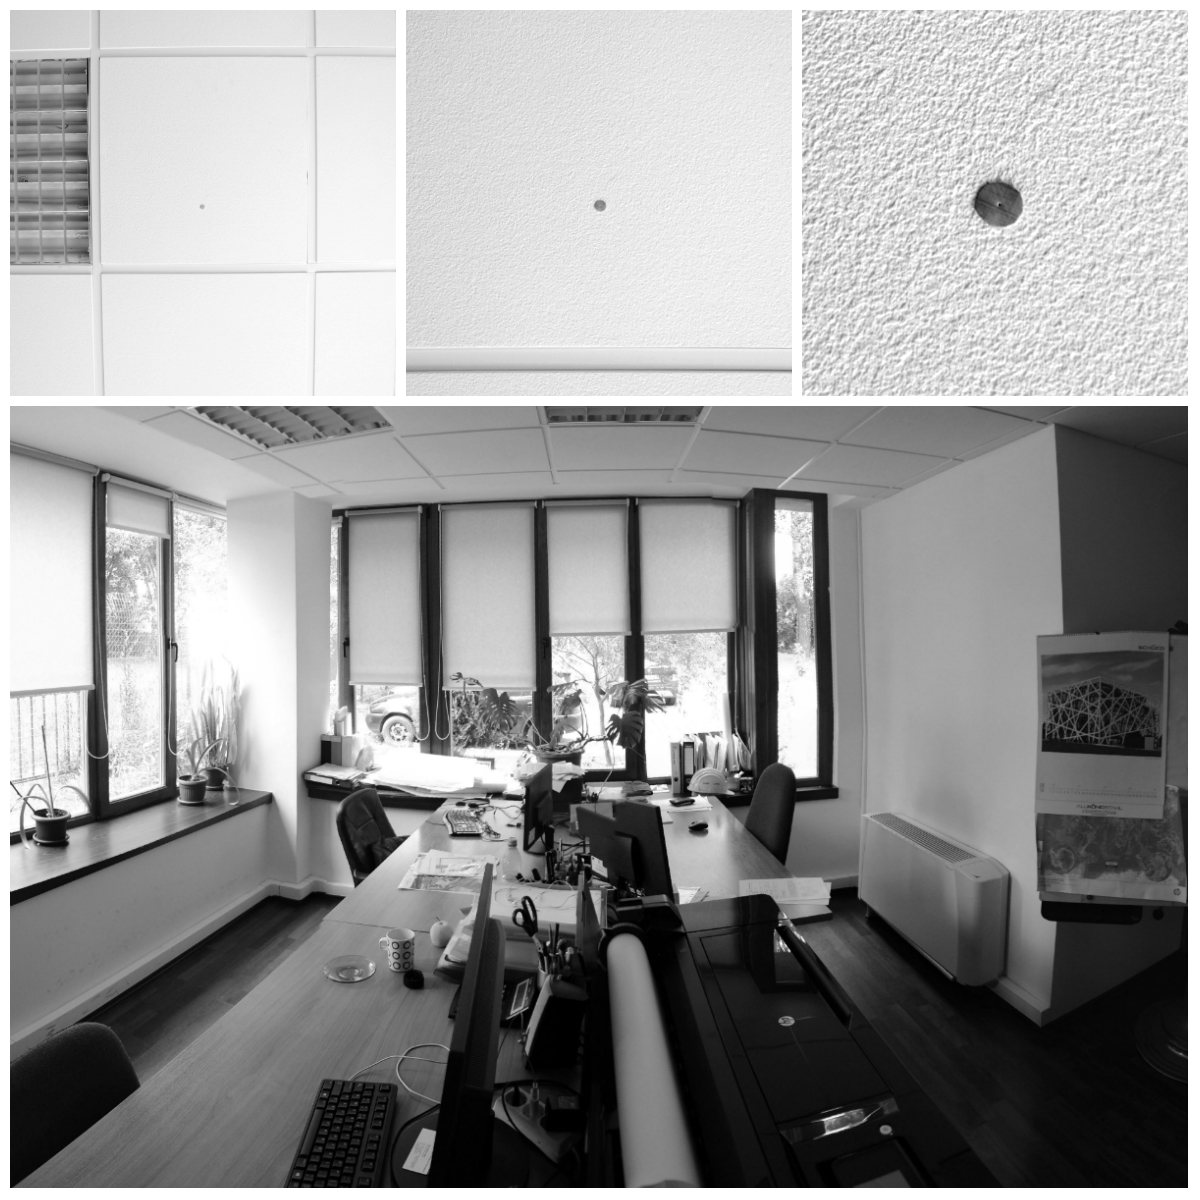 OFFICE PINHOLE PROJECT